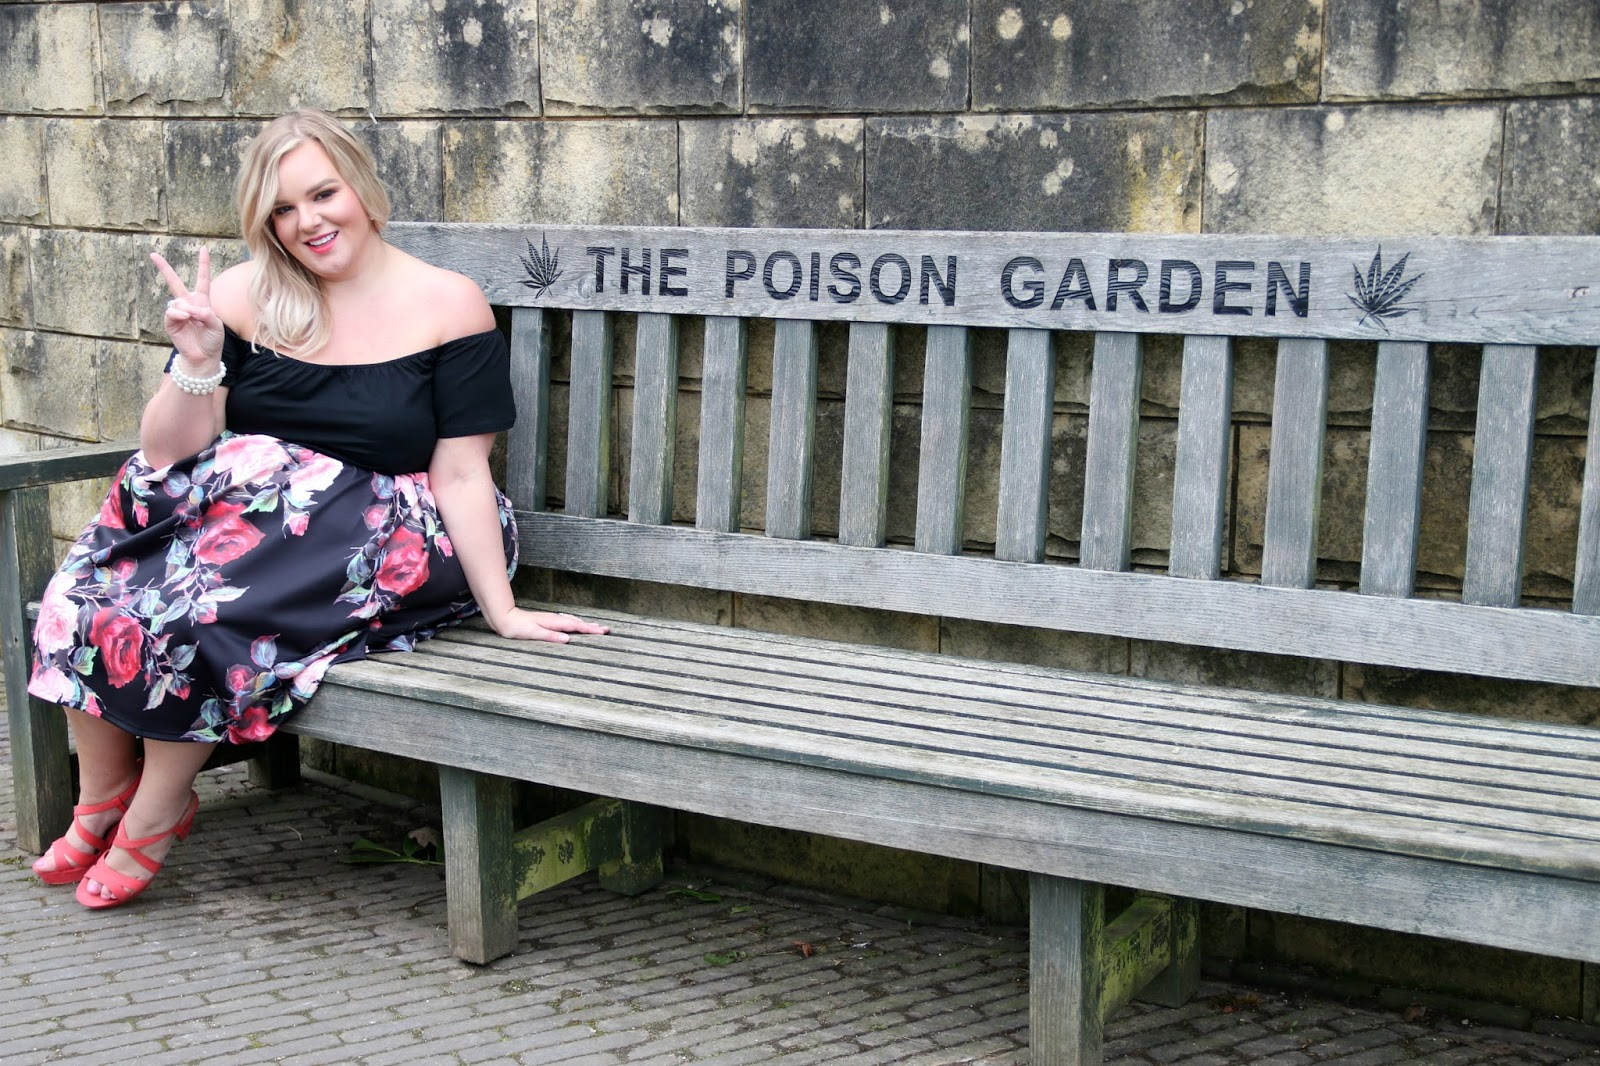 AX Paris Curve Rose Print Bardot Dress at Yours Clothing in the Poison Garden at The Alnwick Garden